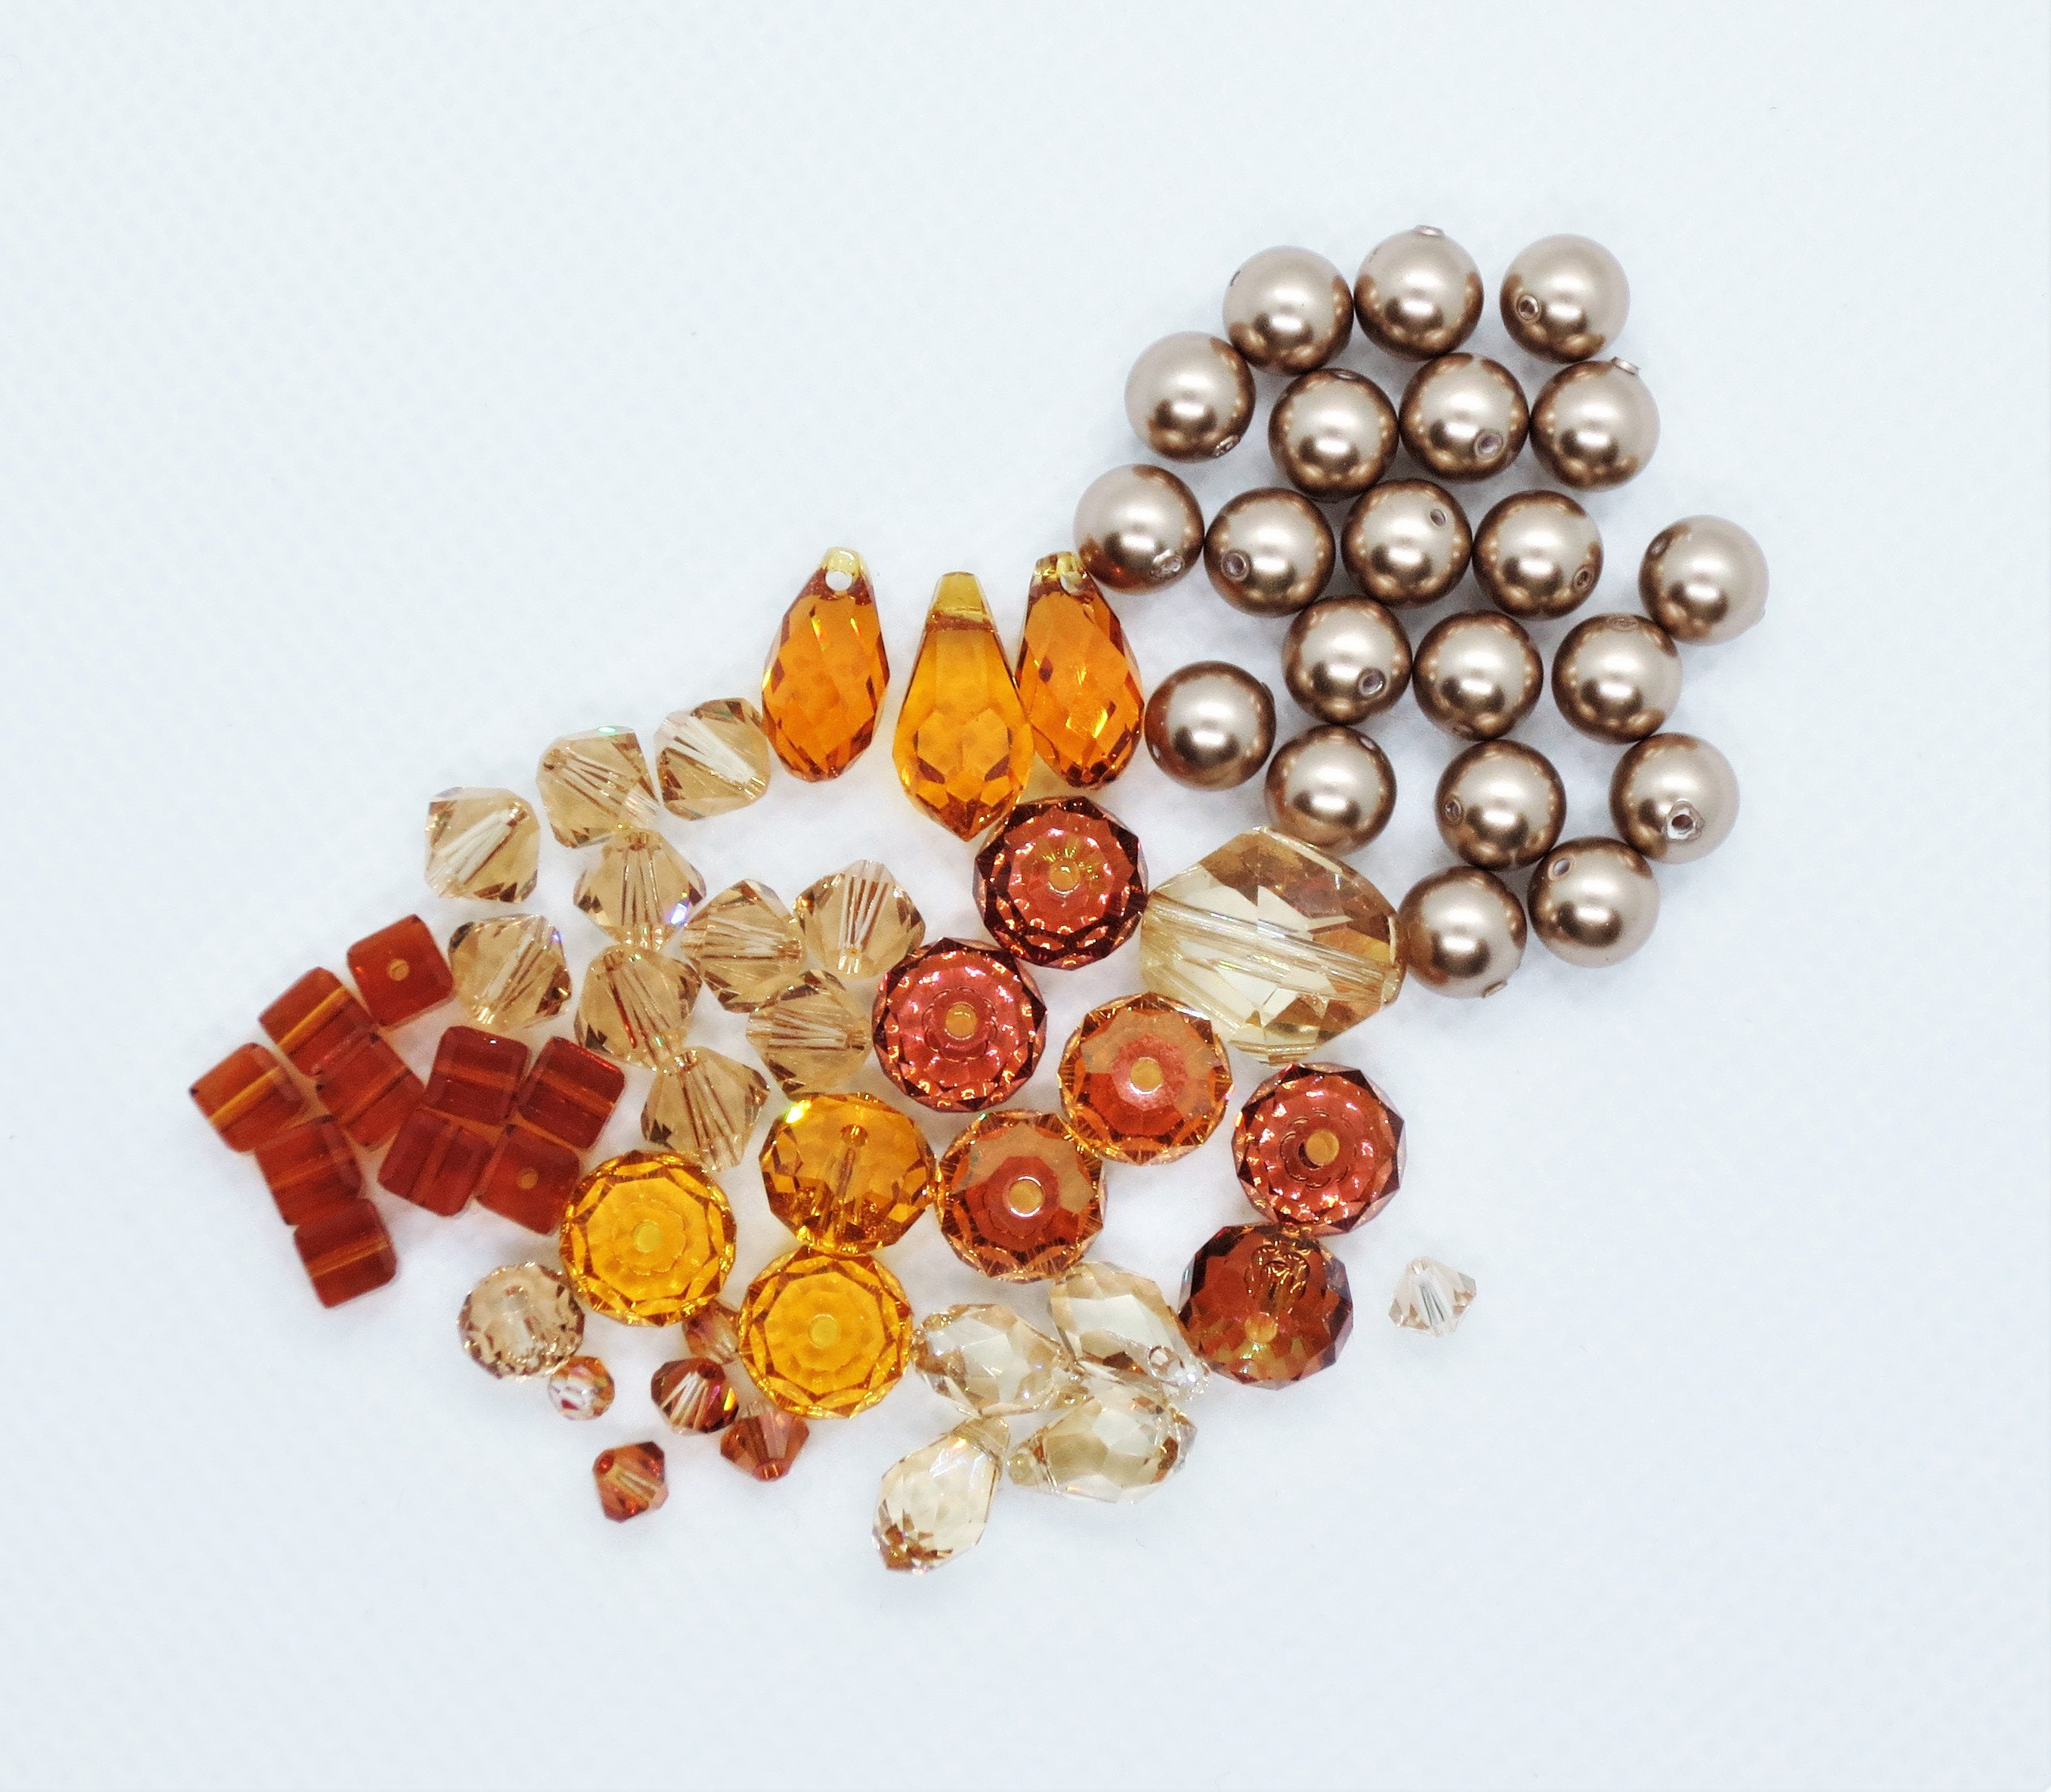 9a50c68a2f89 Wholesale Lot Swarovski Crystals and Pearls Topaz Finish